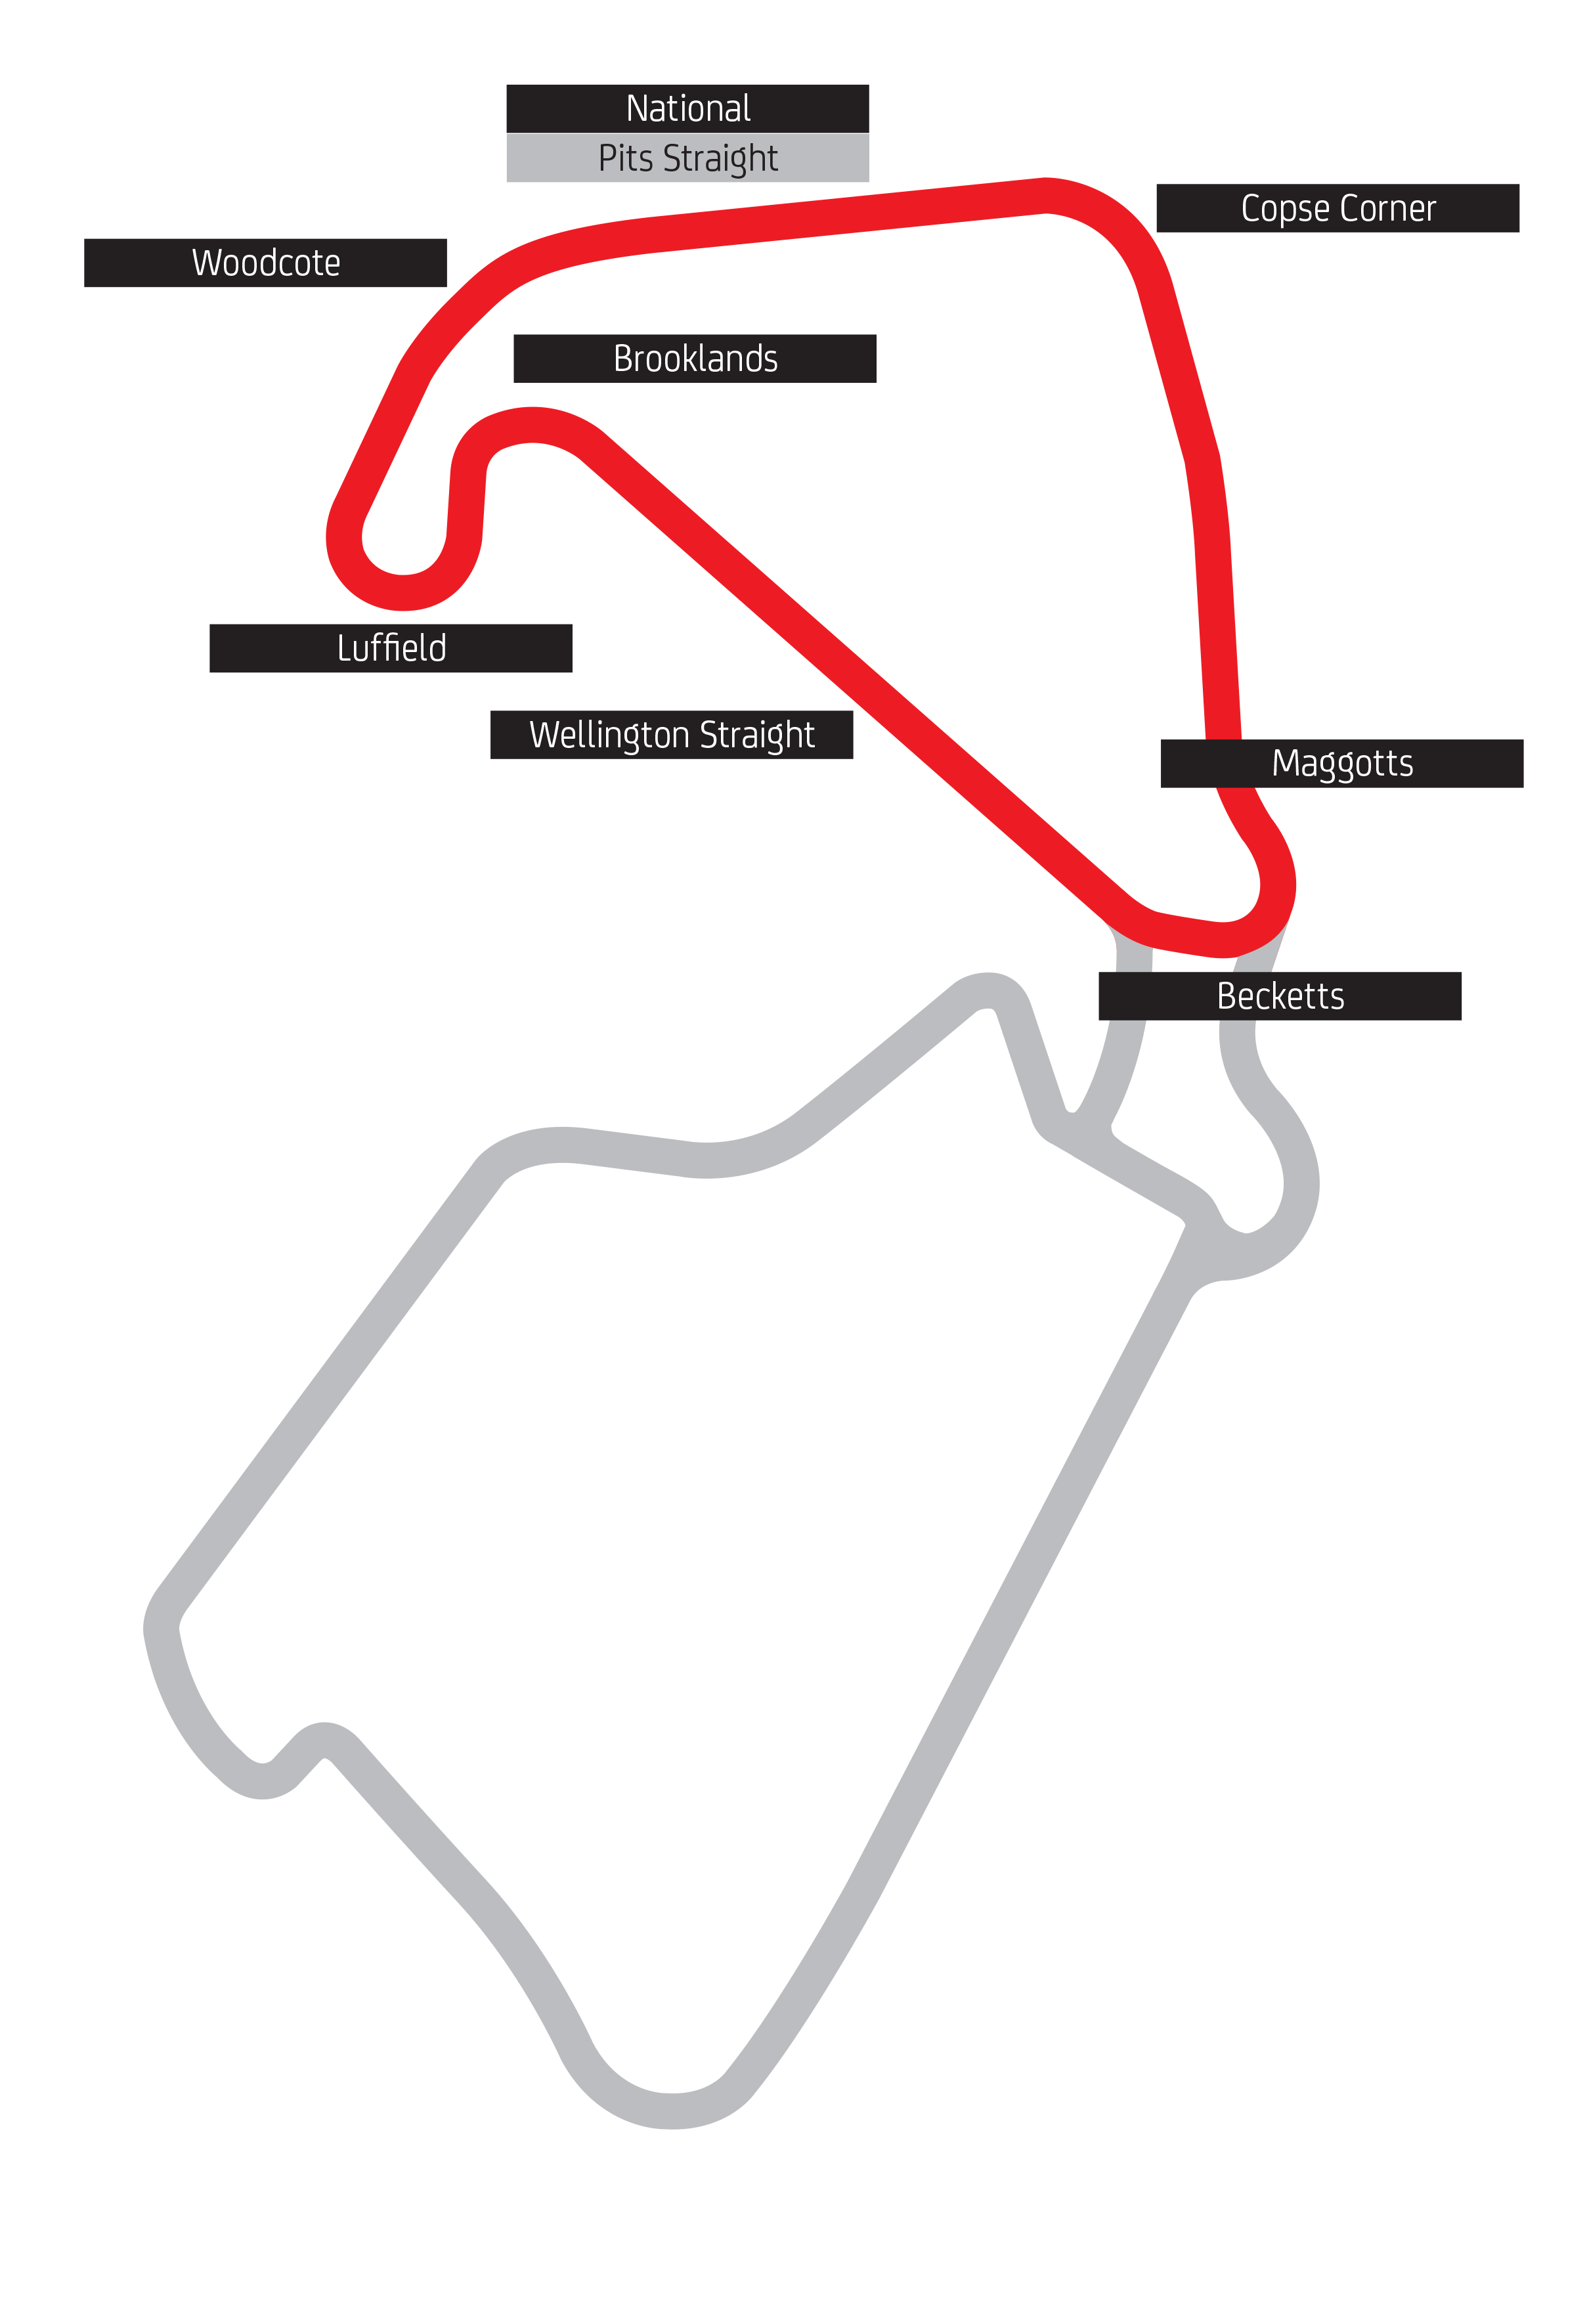 Pcars_Silverstone_National.png